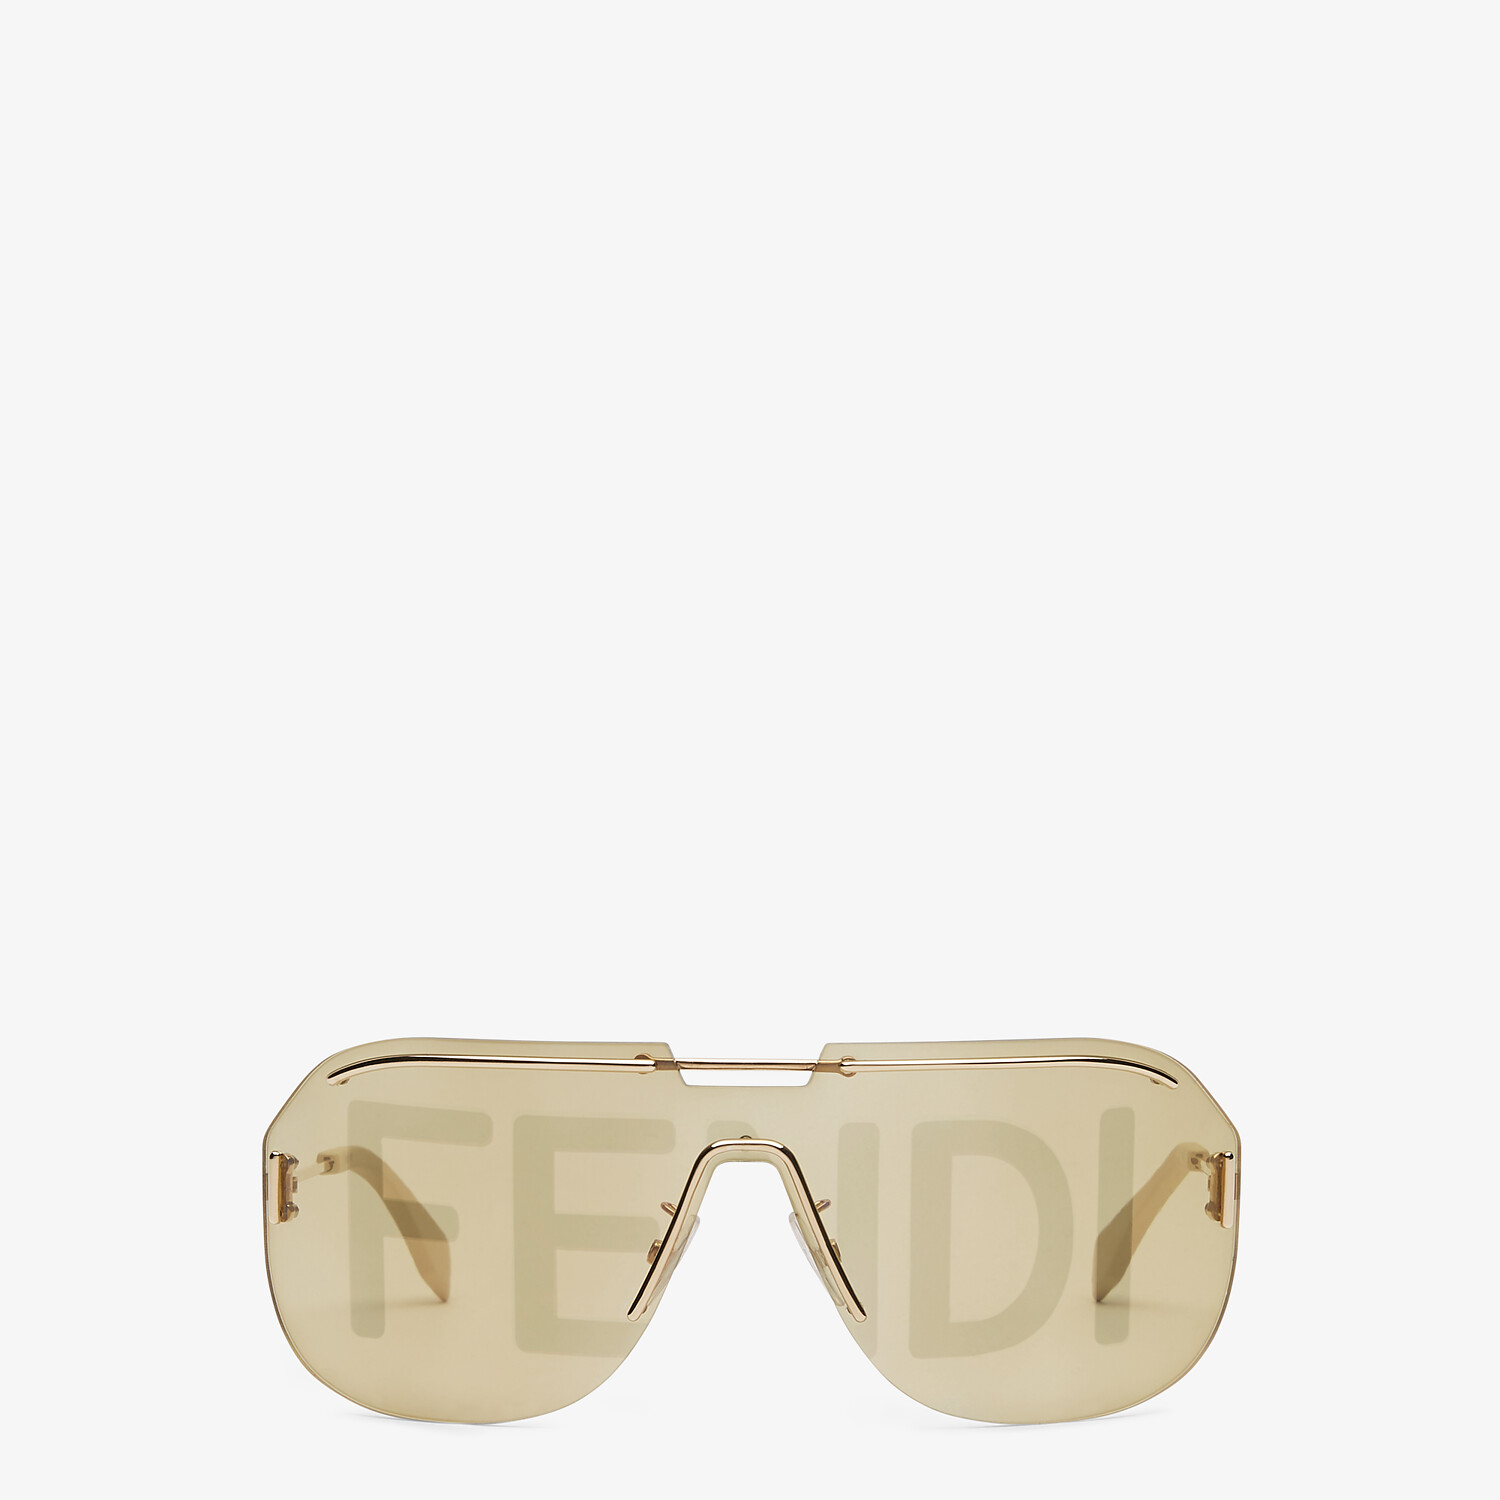 FENDI FENDI CODE - Fashion Show photochromatic sunglasses - view 1 detail